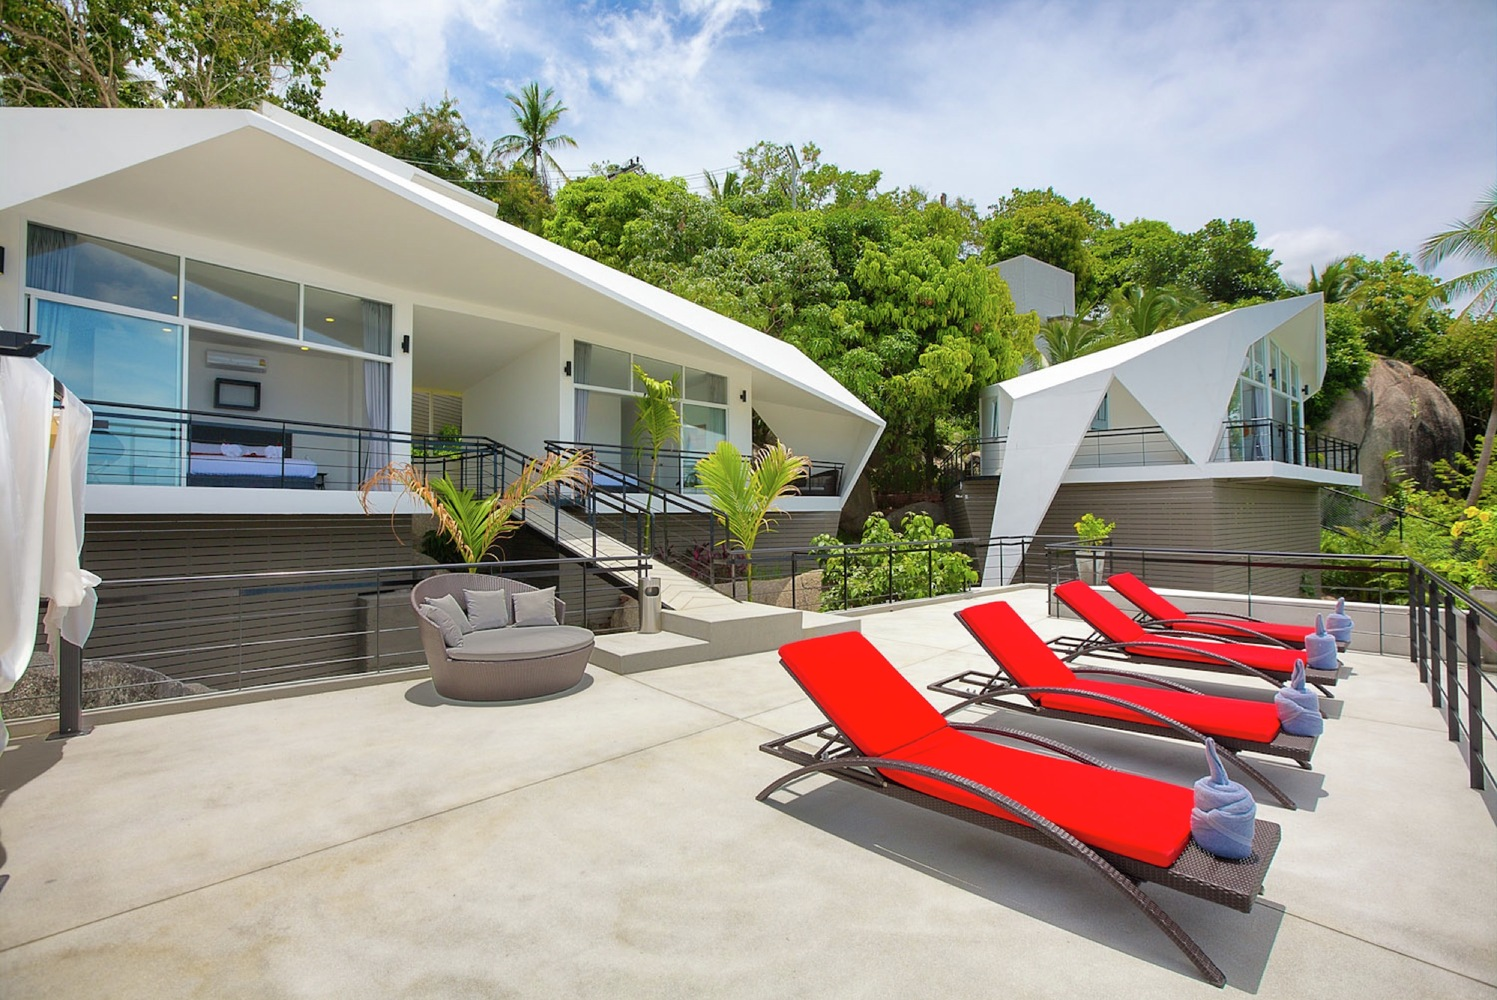 suan-kachamudee-sicart-smith-architects The New Resort Suan Kachamudee in Thailandsuan kachamudee sicart smith architects